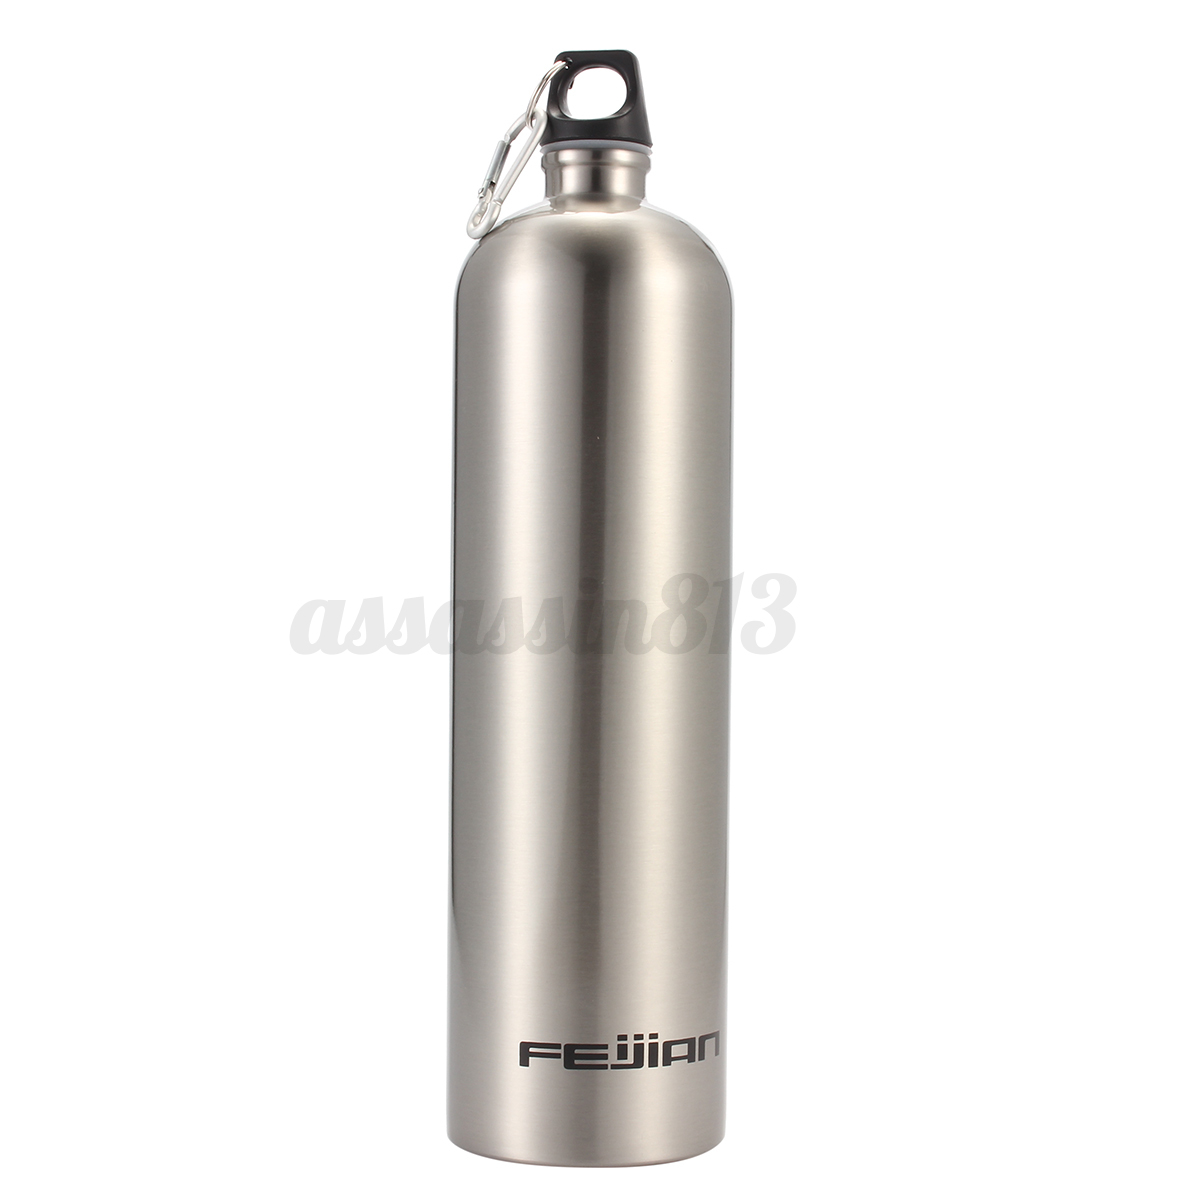 Stainless Steel Travel Water Bottle Outdoor Sports Gym ...